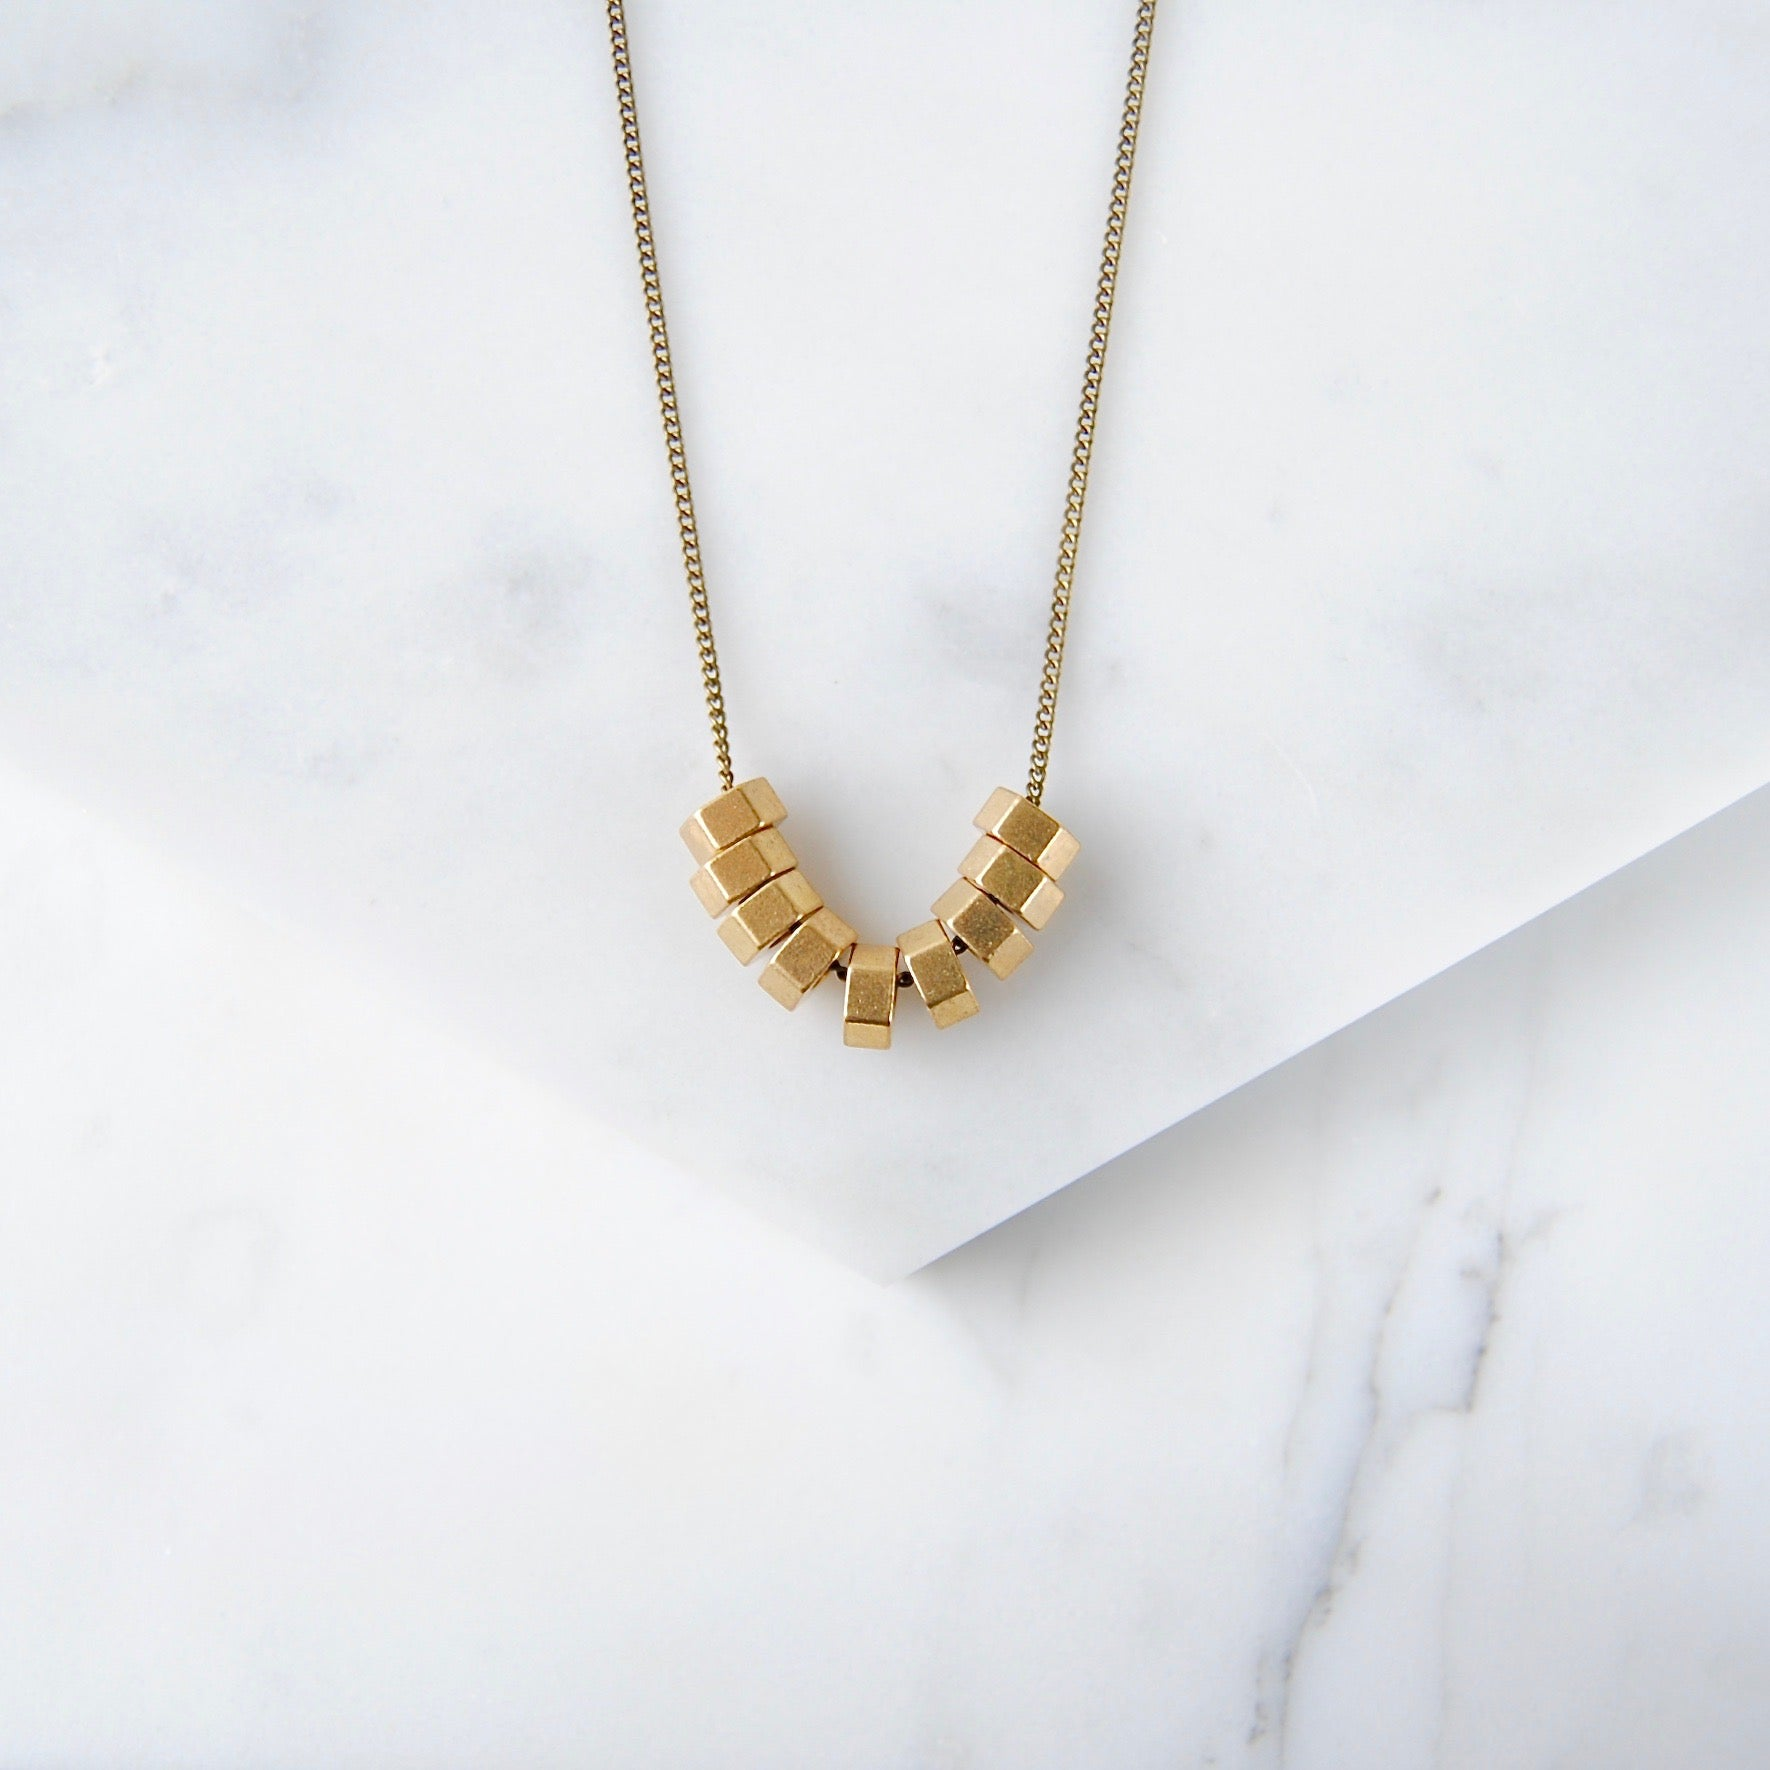 HEXAGONS CLUSTER NECKLACE